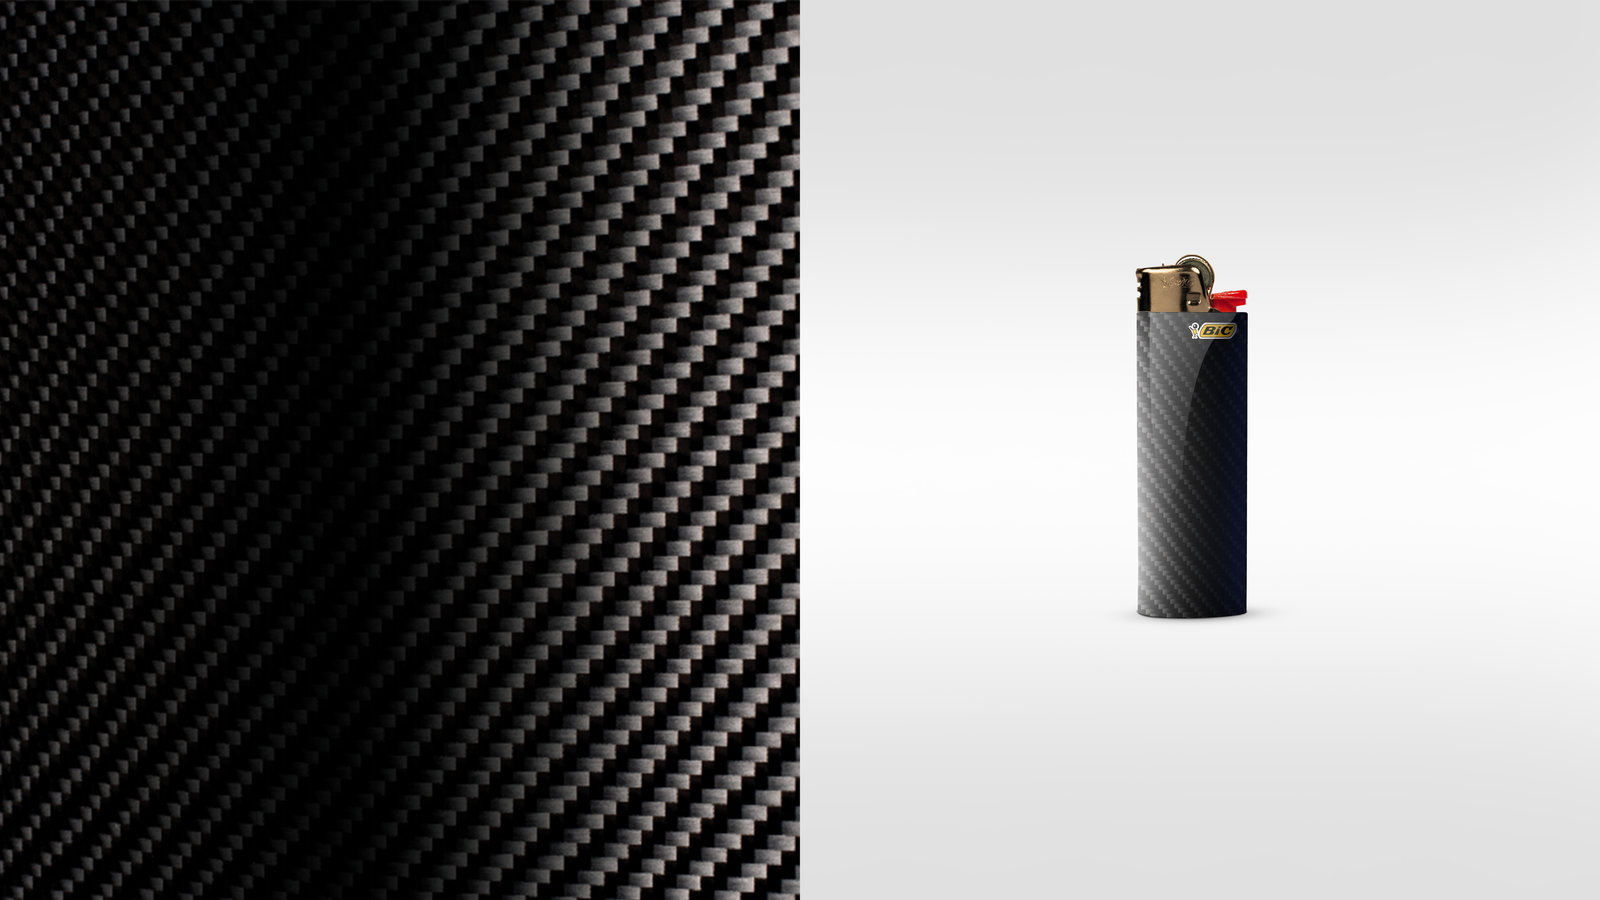 Lighter with texture carbon 1600 0x0x5000x2813 q85